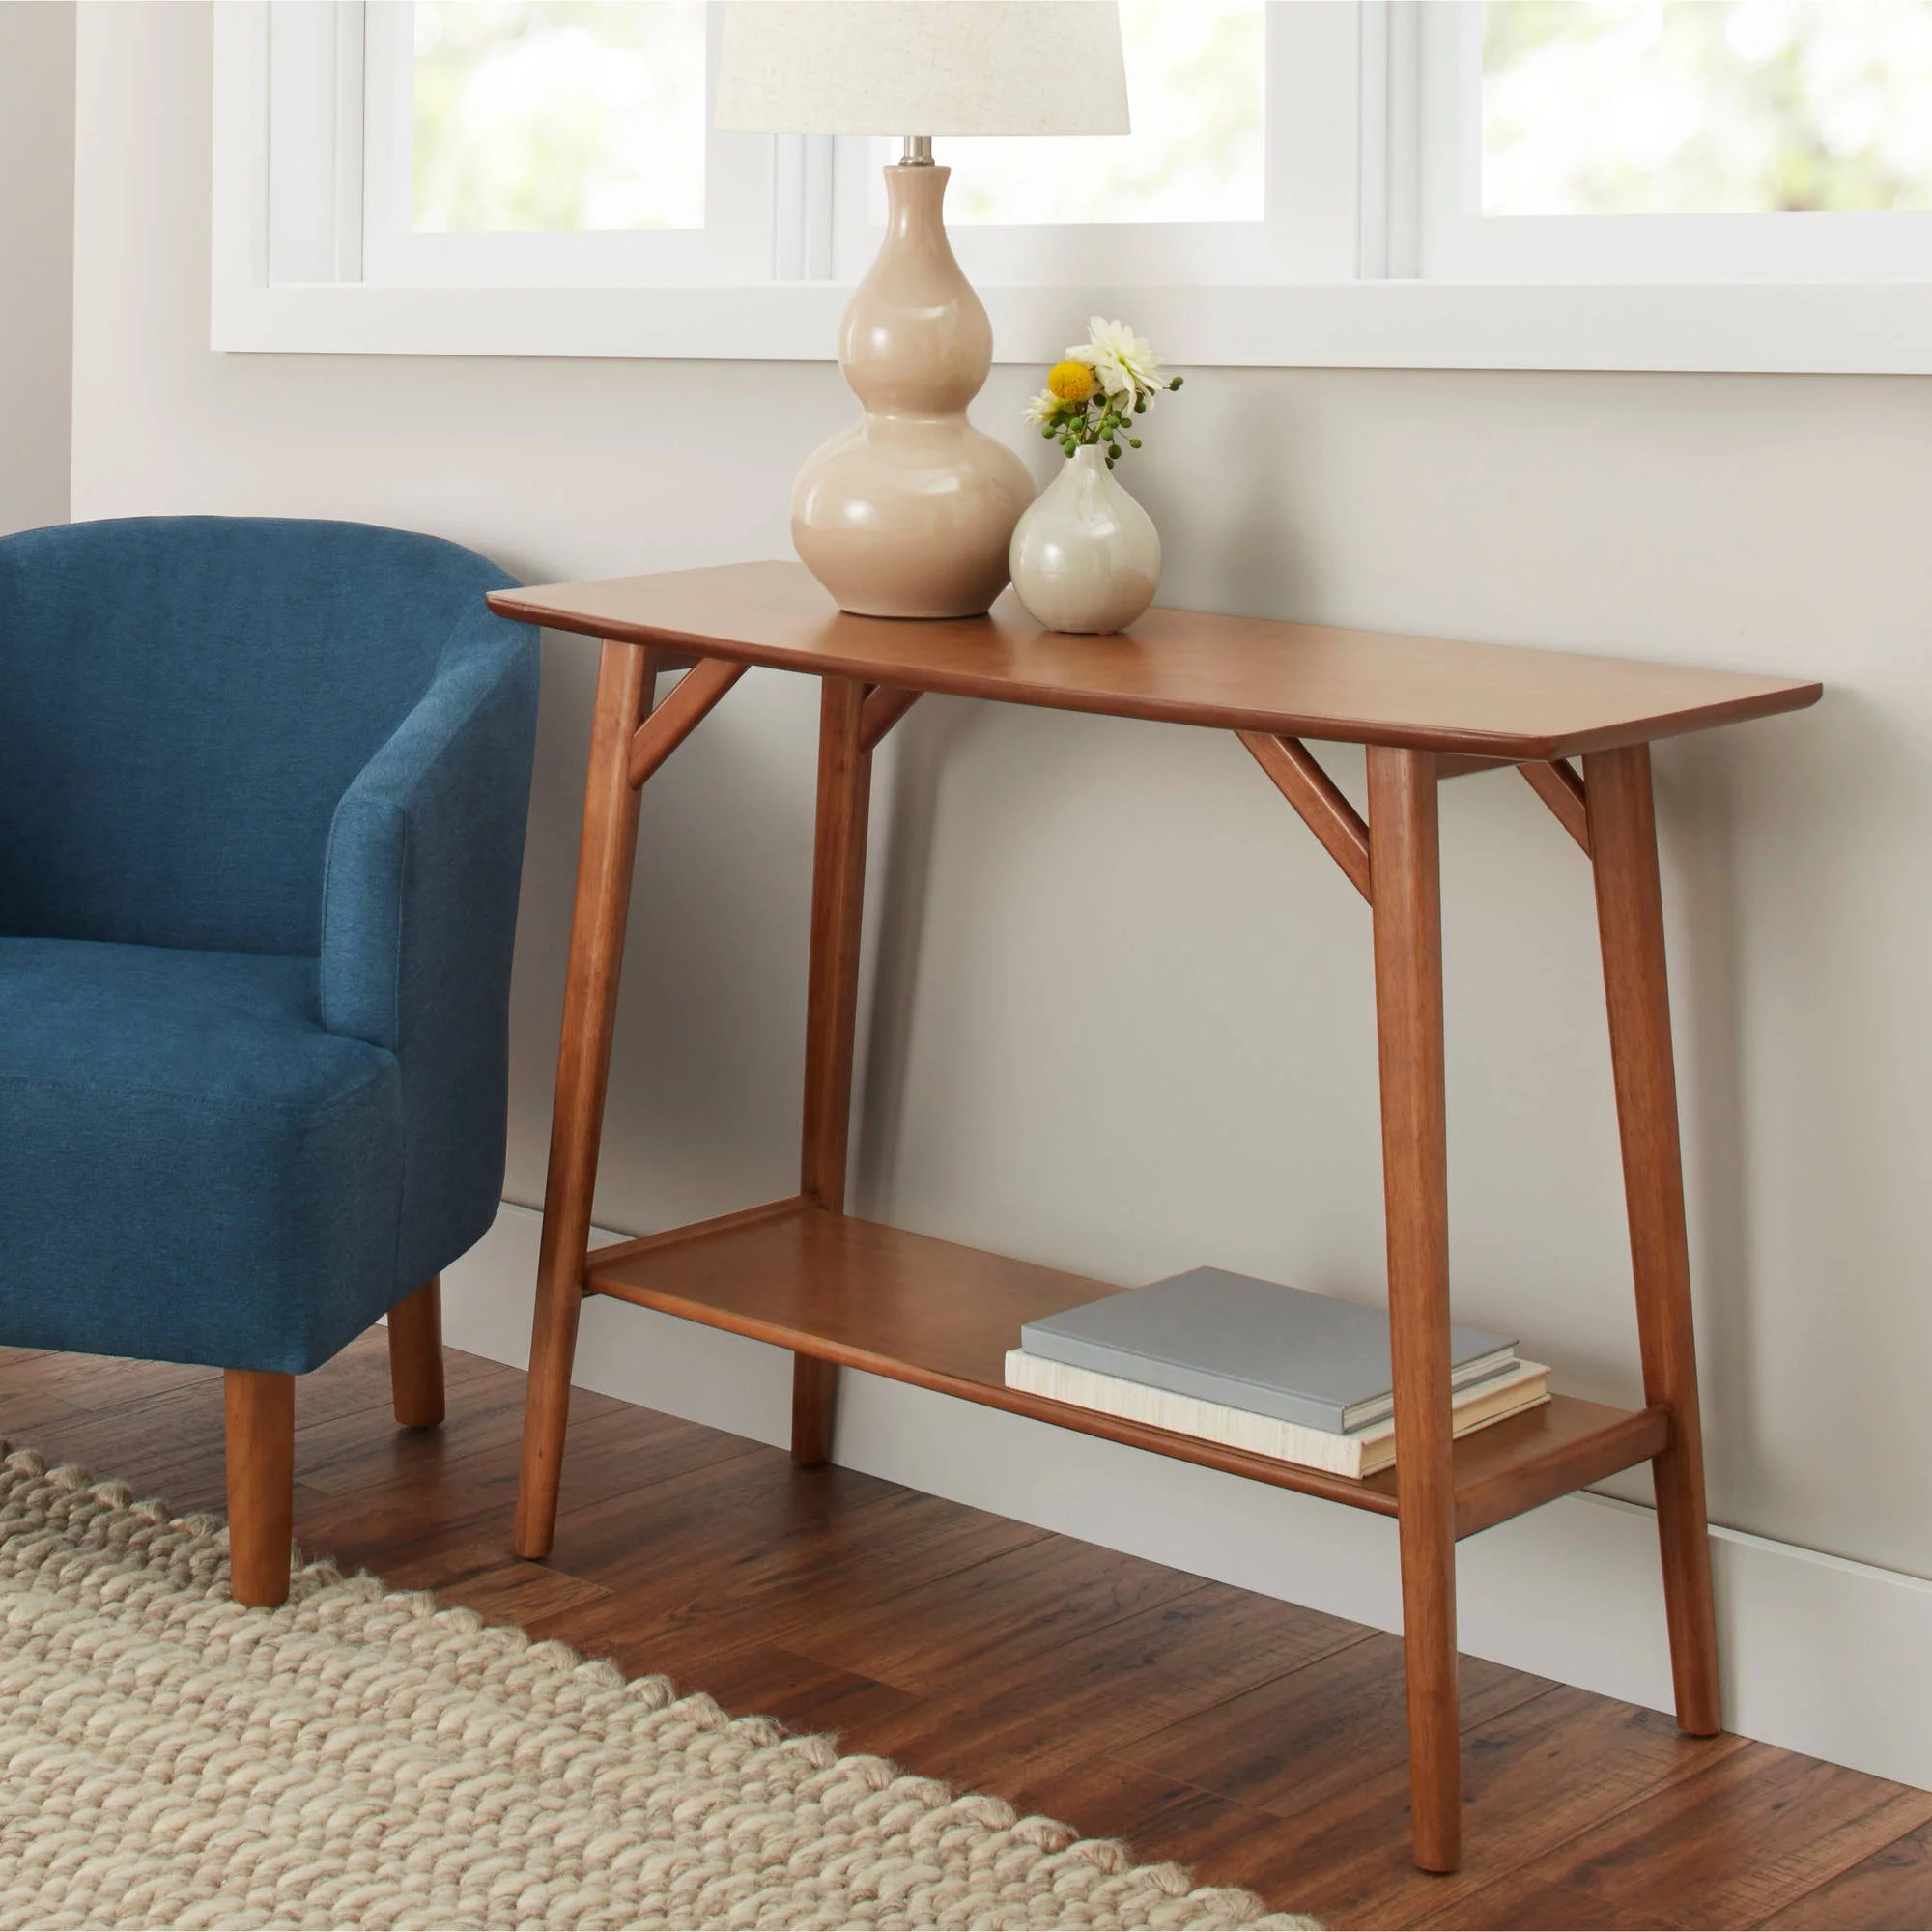 Mid Century Better Homes Gardens Reed Mid Century Modern Console Table Pecan